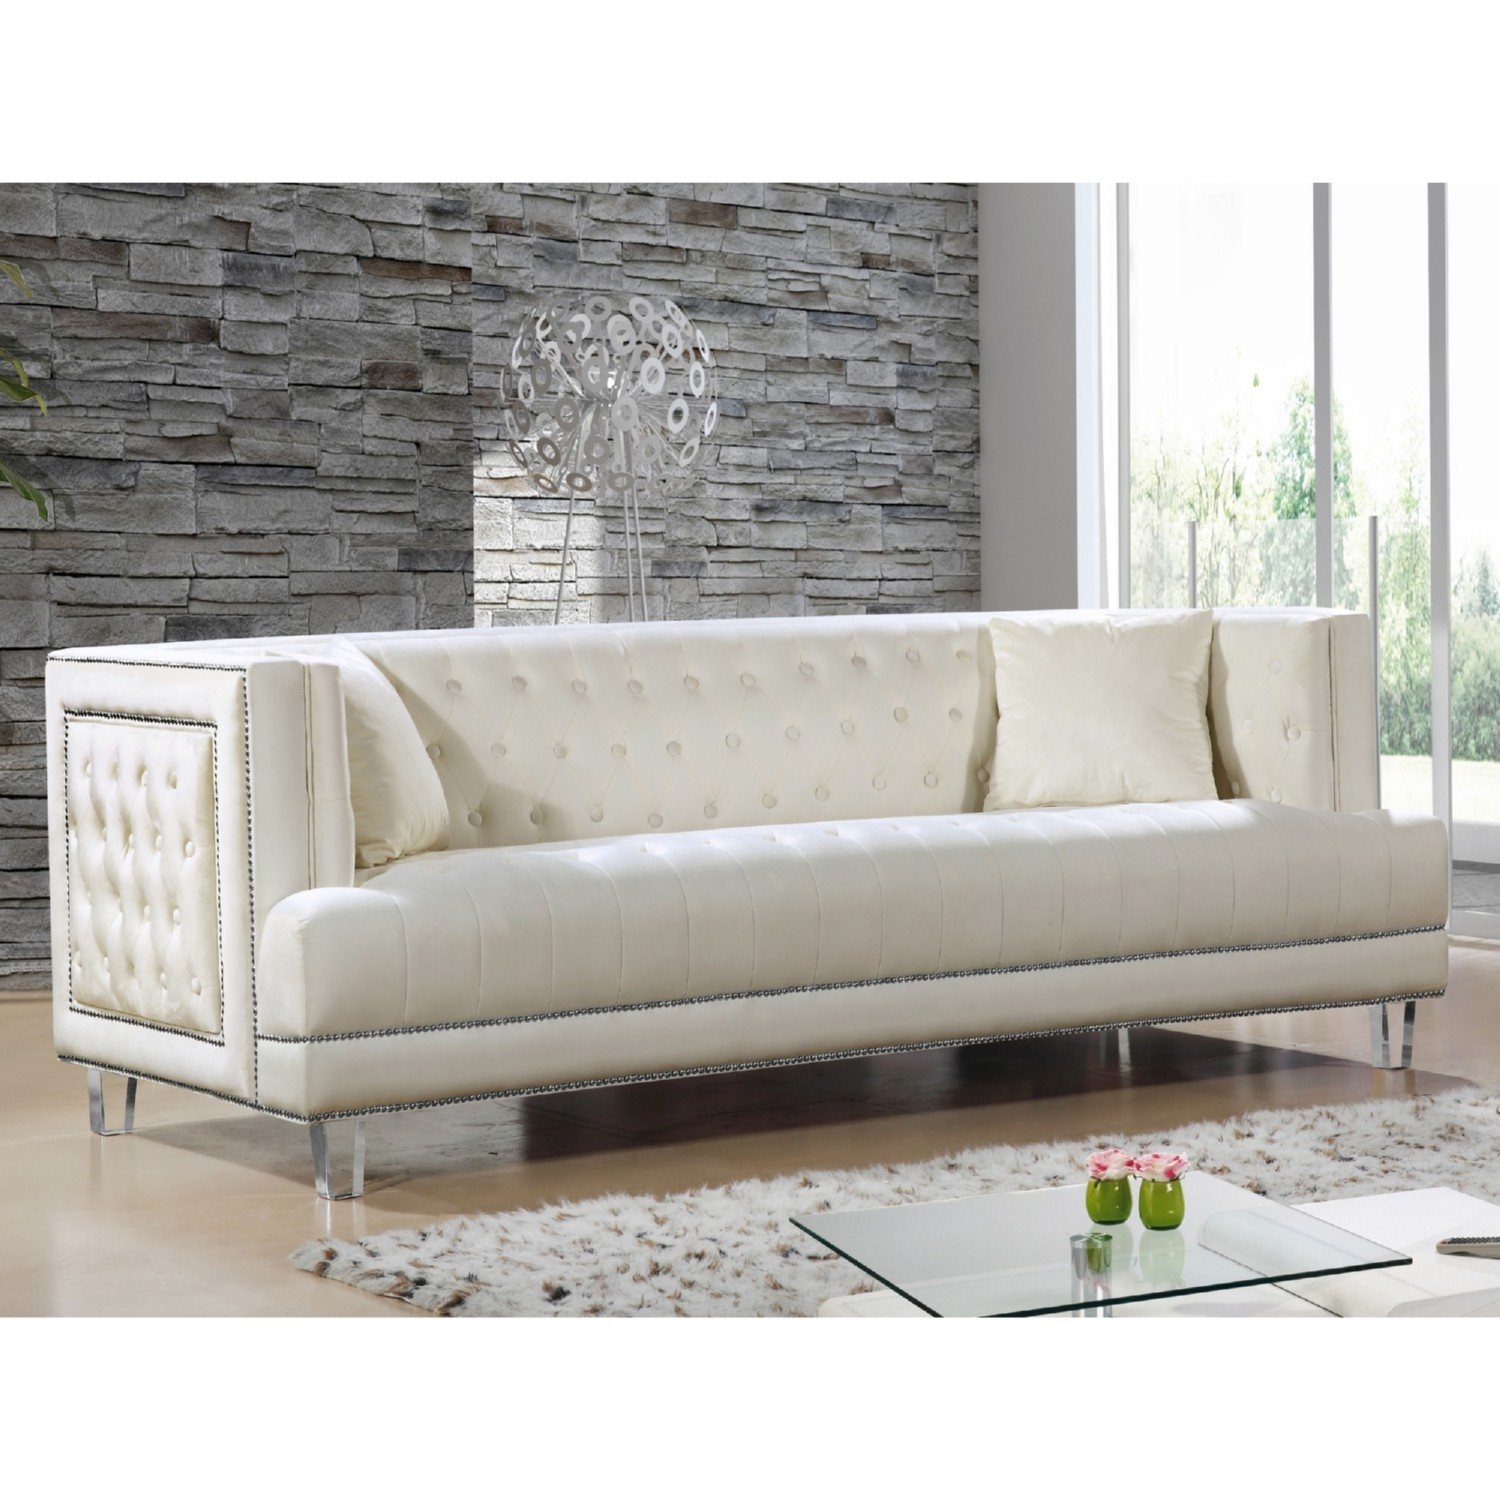 velvet grey tufted sofa set covers in uganda gray  review home decor